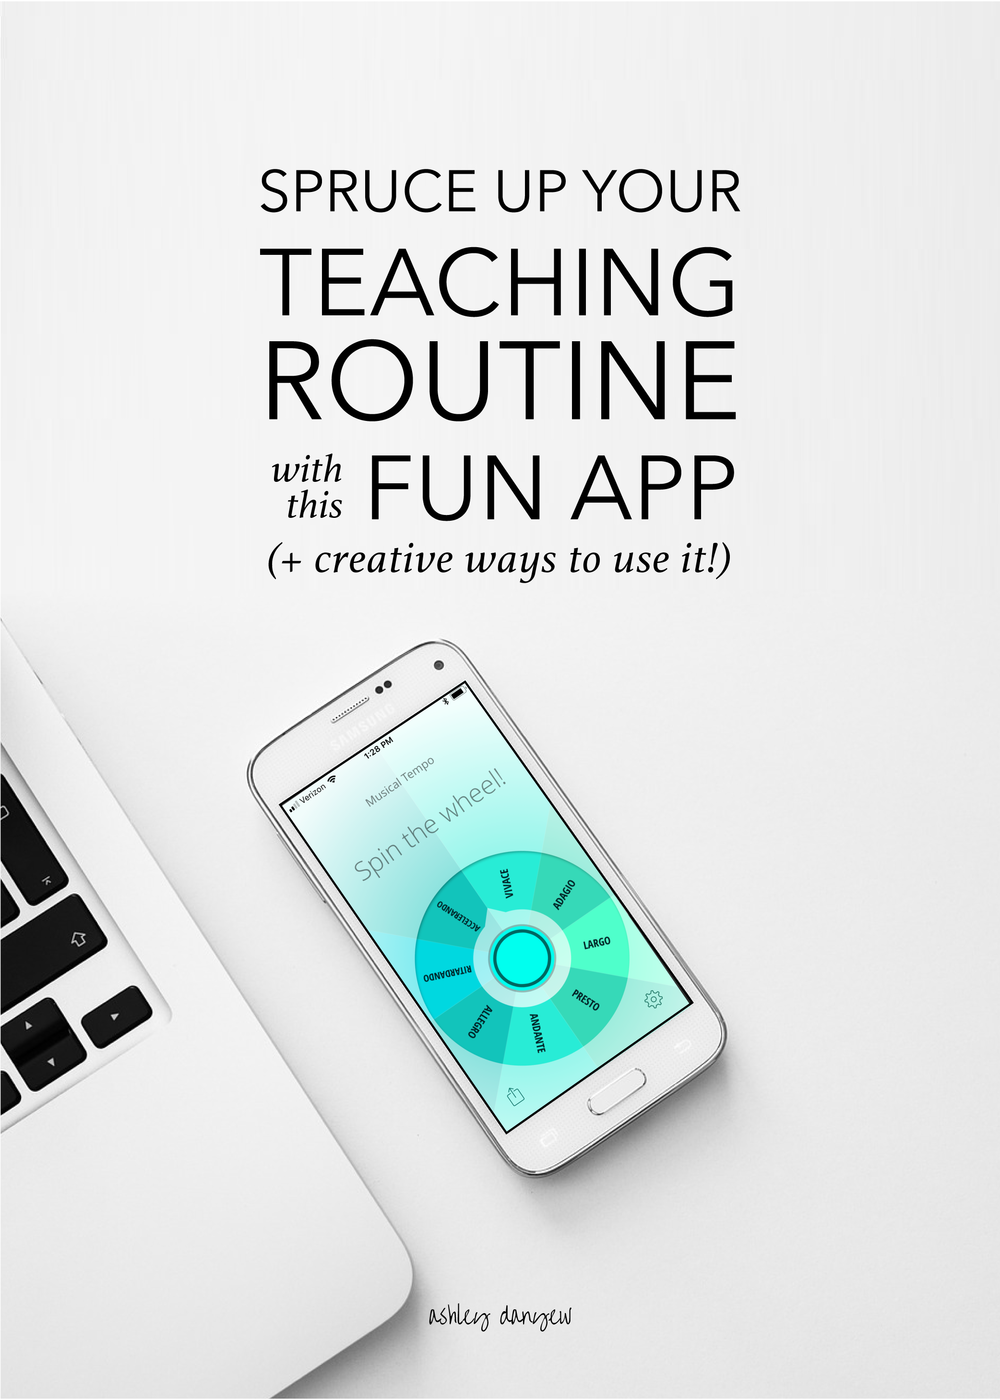 Spruce Up Your Teaching Routine With This Fun App - Decide Now-67.png